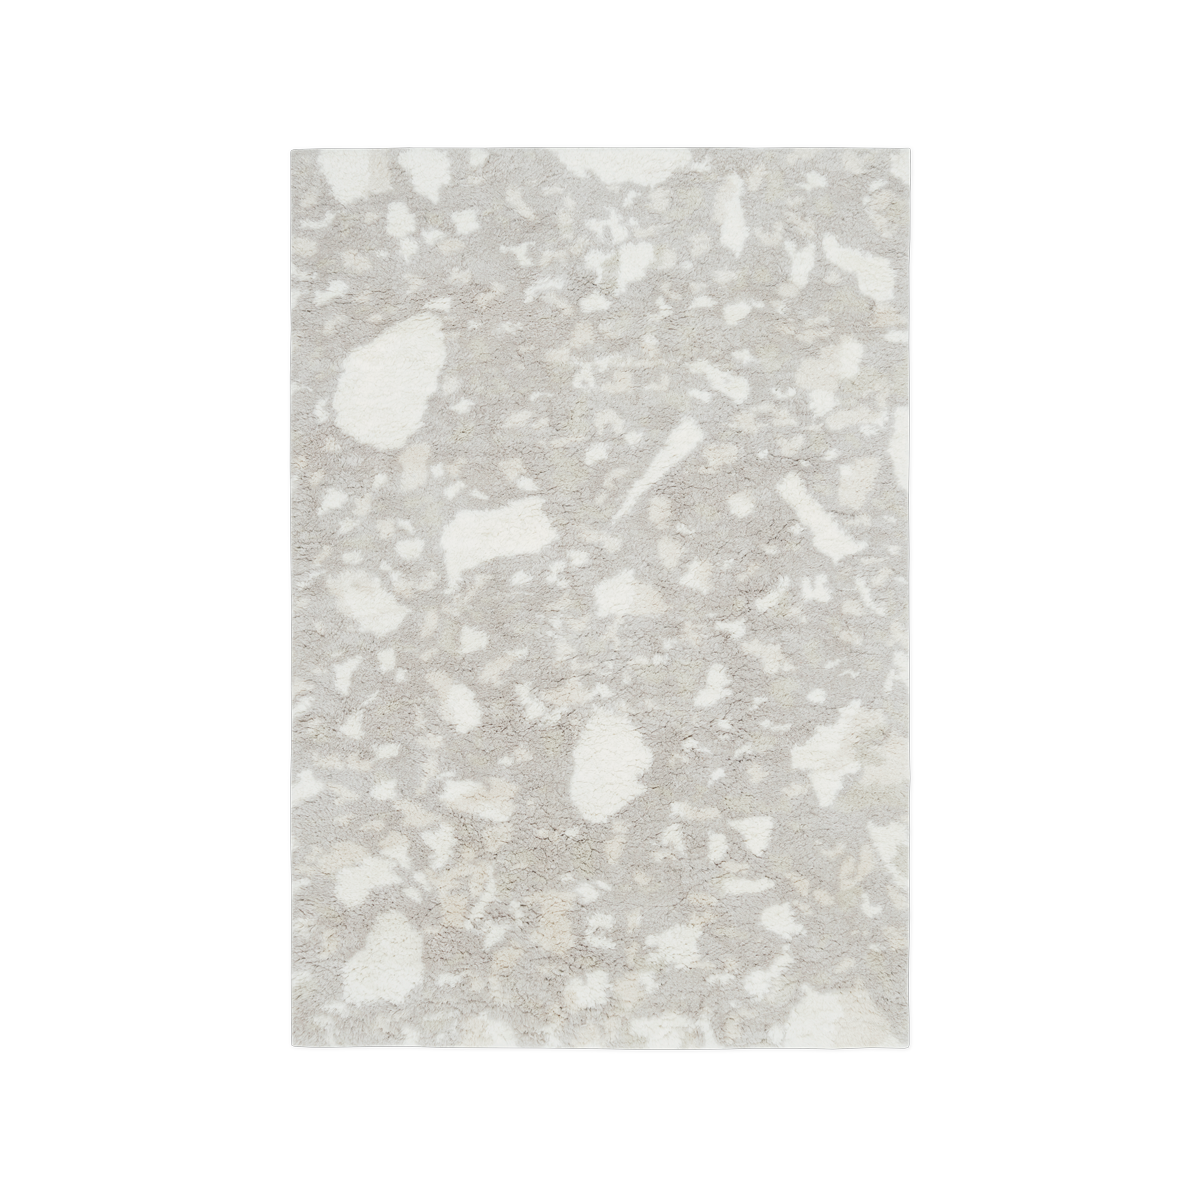 Product image of the shaggy rug Archipelago in the color Oatmeal. It has a natural, stone-like pattern across the whole rug.